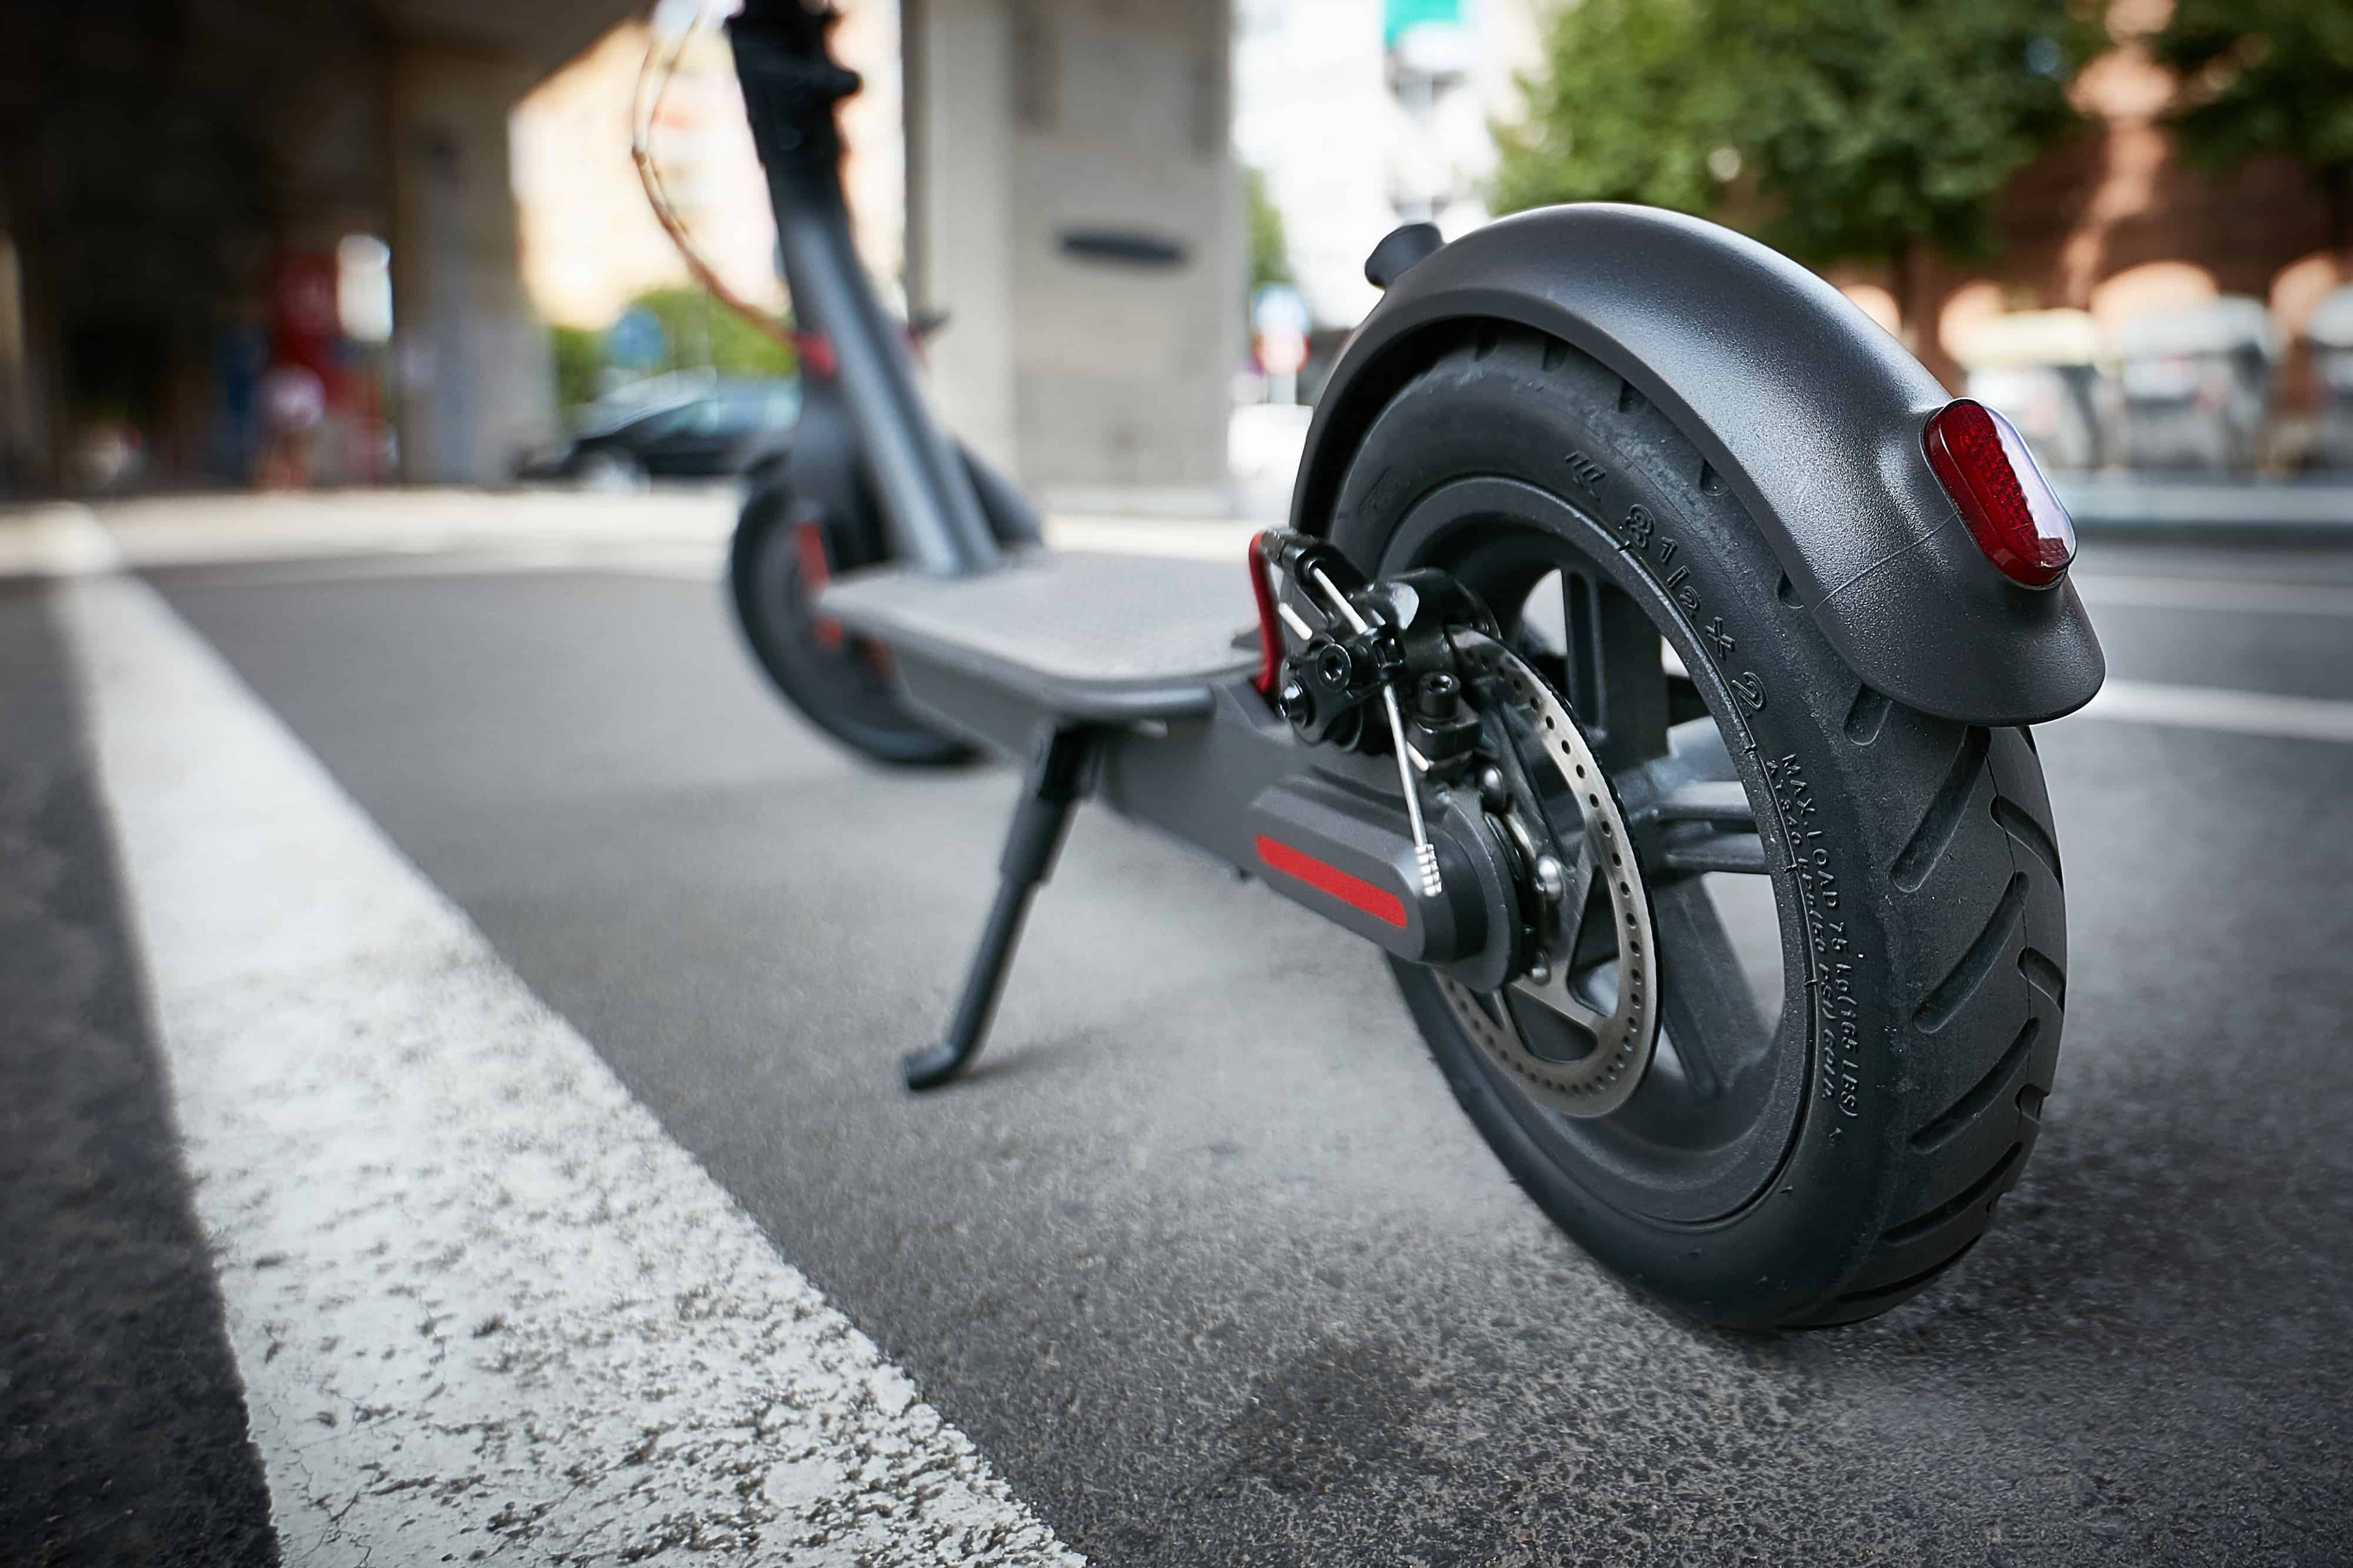 35-Year-Old Male Scooter Rider Dies in Pershing Drive Crash [Balboa Park, CA]